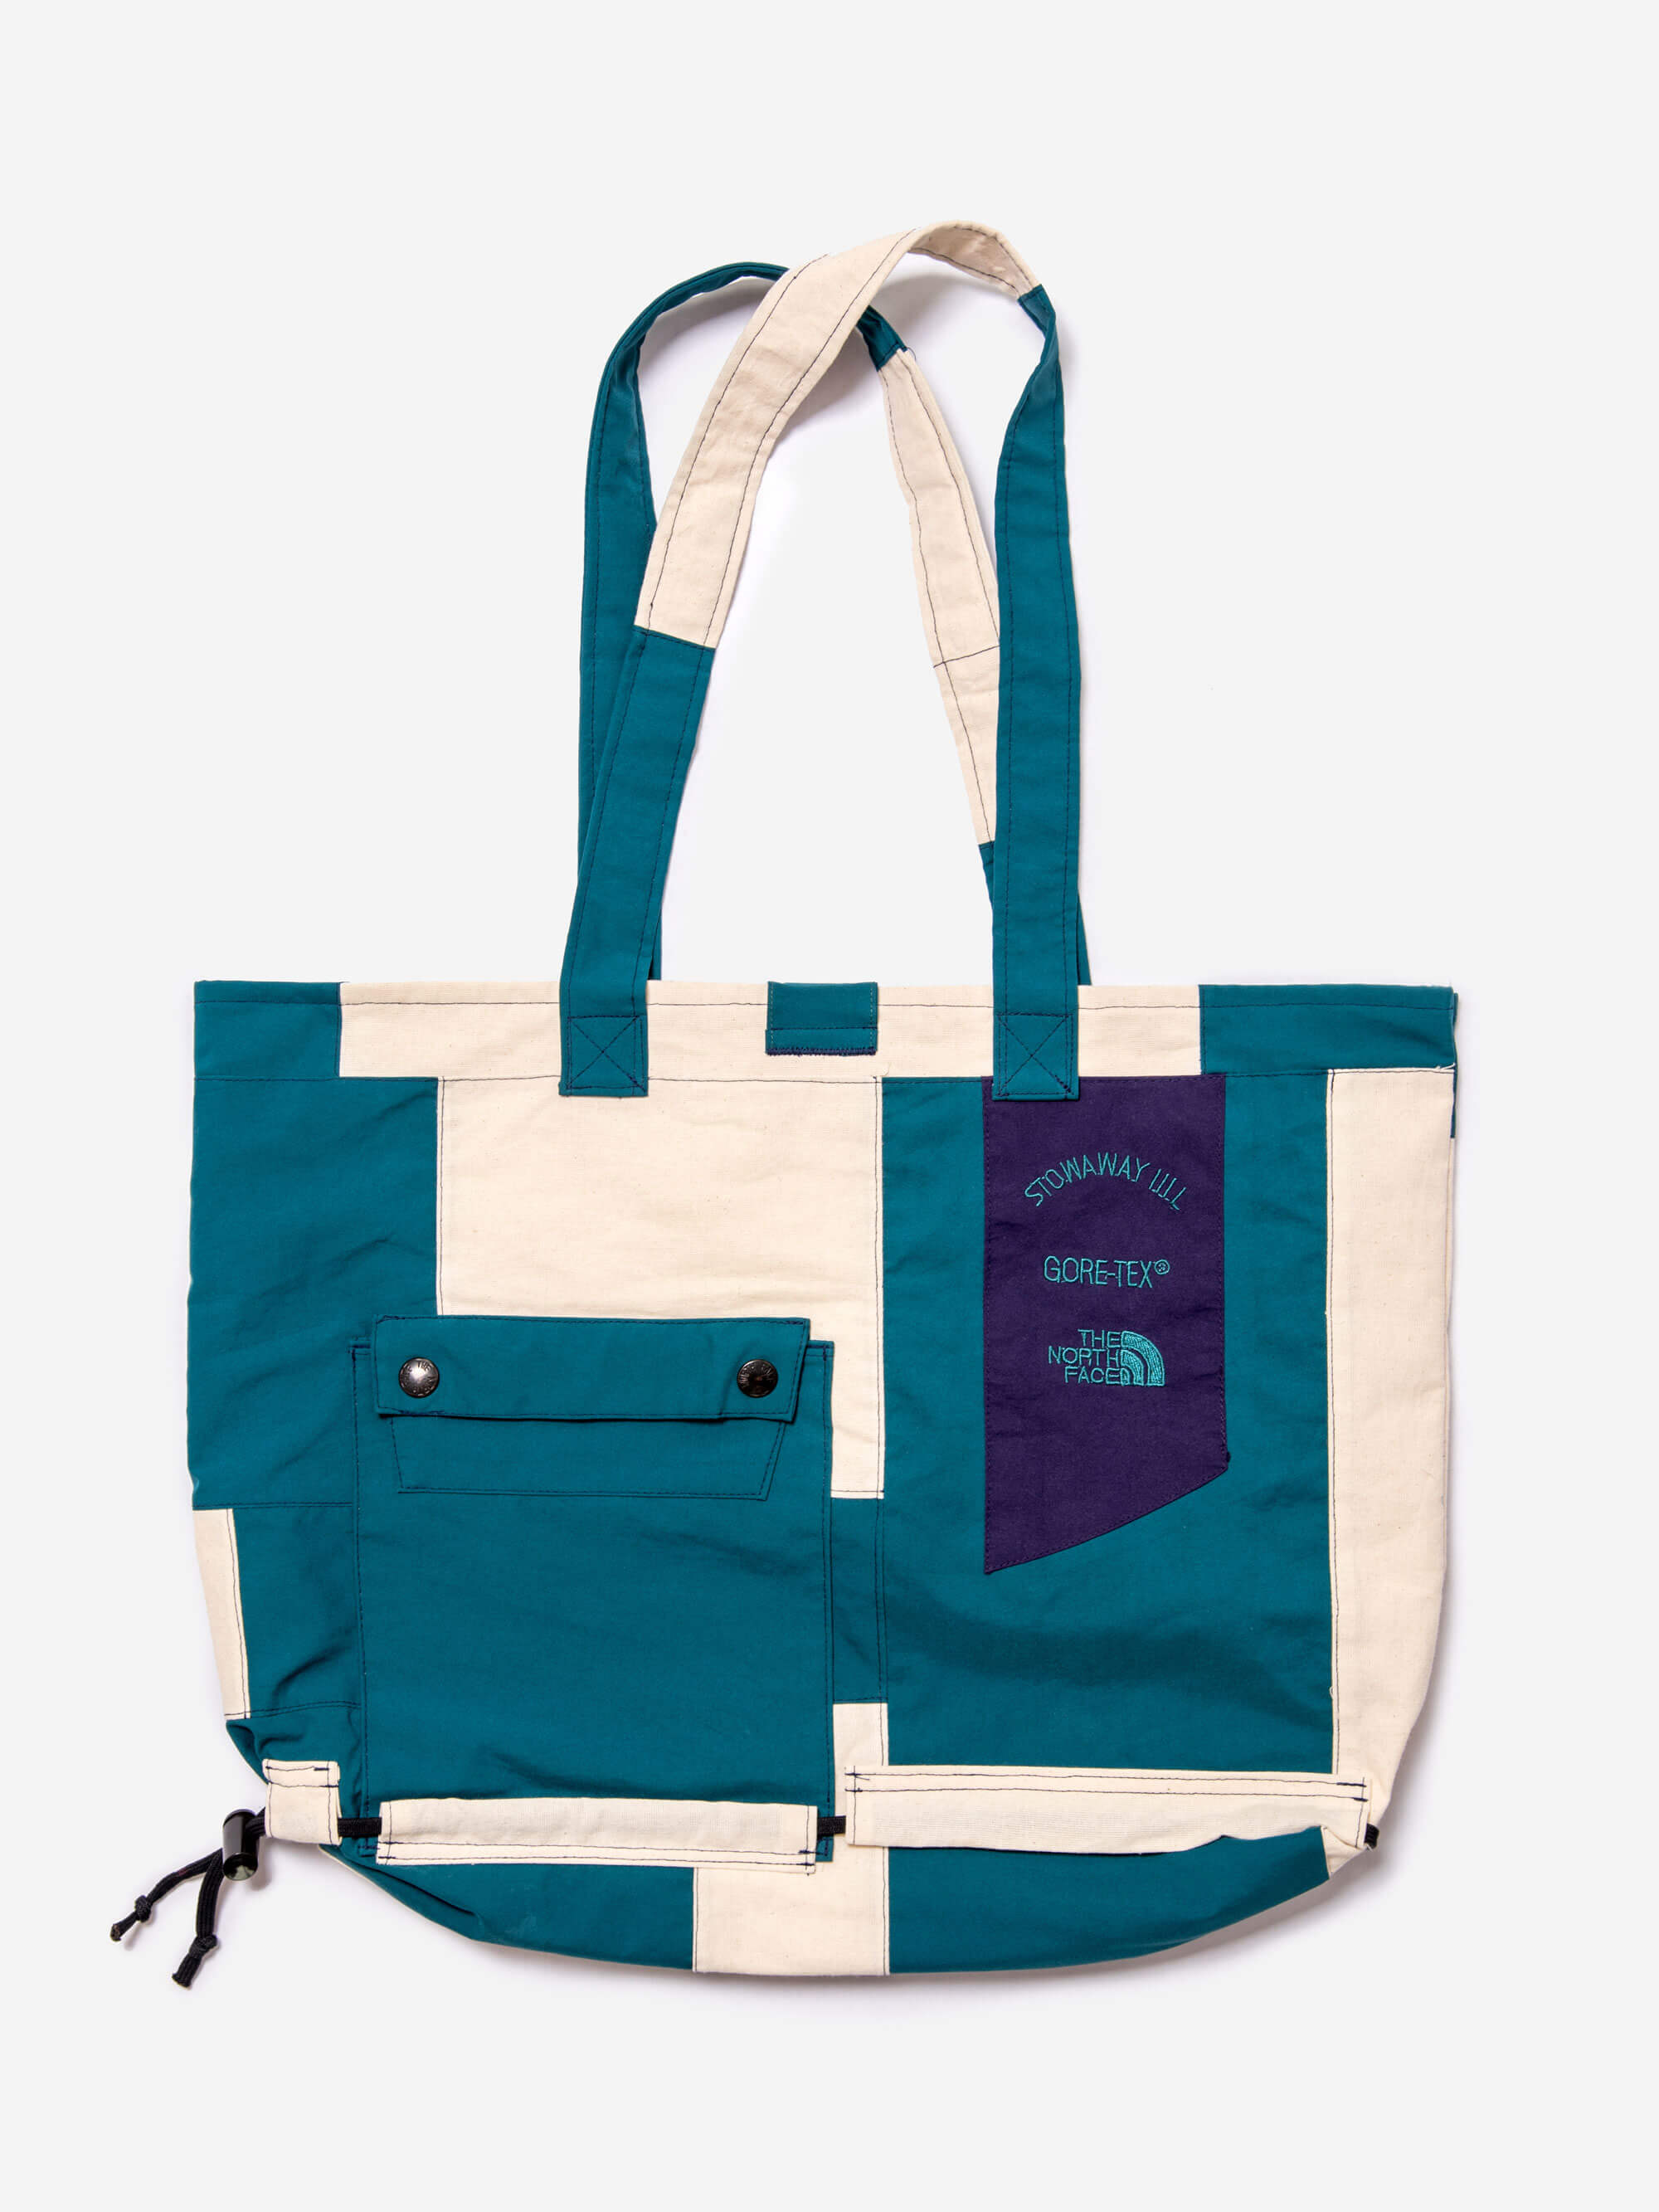 Greater-Goods-Fashion-Upcycling-North-Face-Bag-Teal